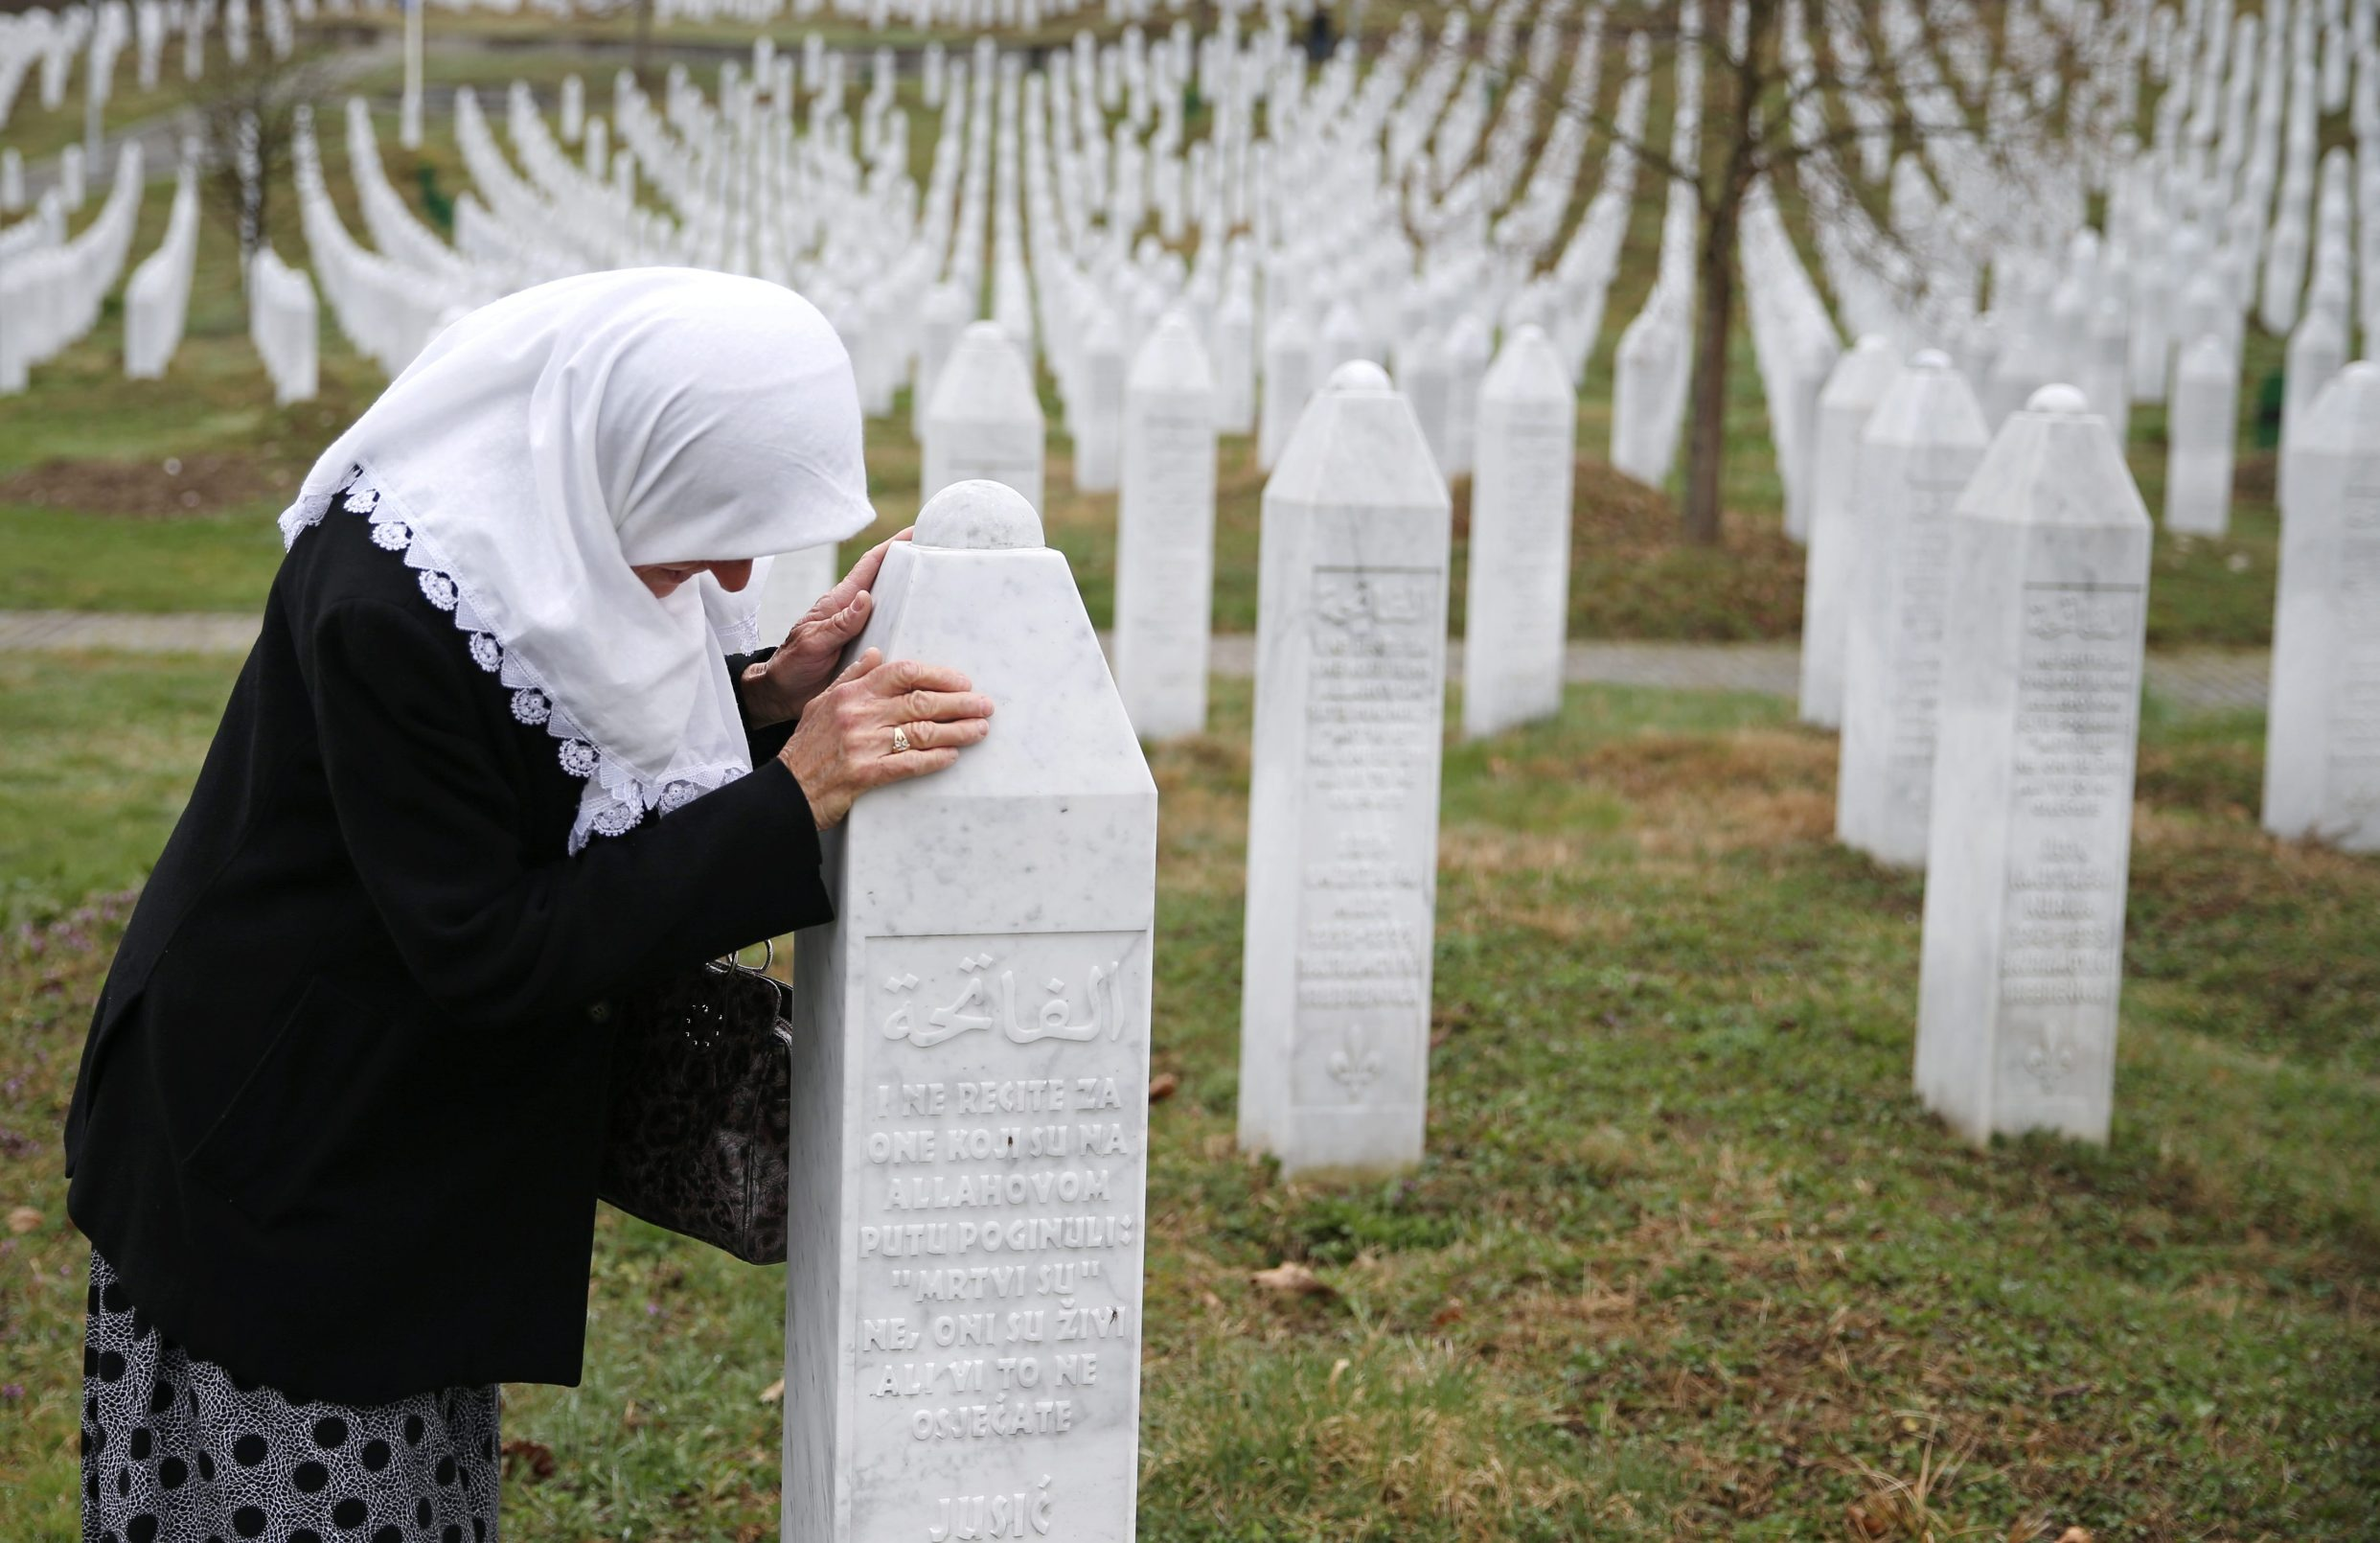 A woman prays near a grave of her family members in the Memorial centre Potocari before the judges verdict on former Bosnian Serb political leader Radovan Karadzic's appeal of his 40 year sentence for war crimes, near Srebrenica, Bosnia and Herzegovina March 20, 2019. REUTERS/Dado Ruvic